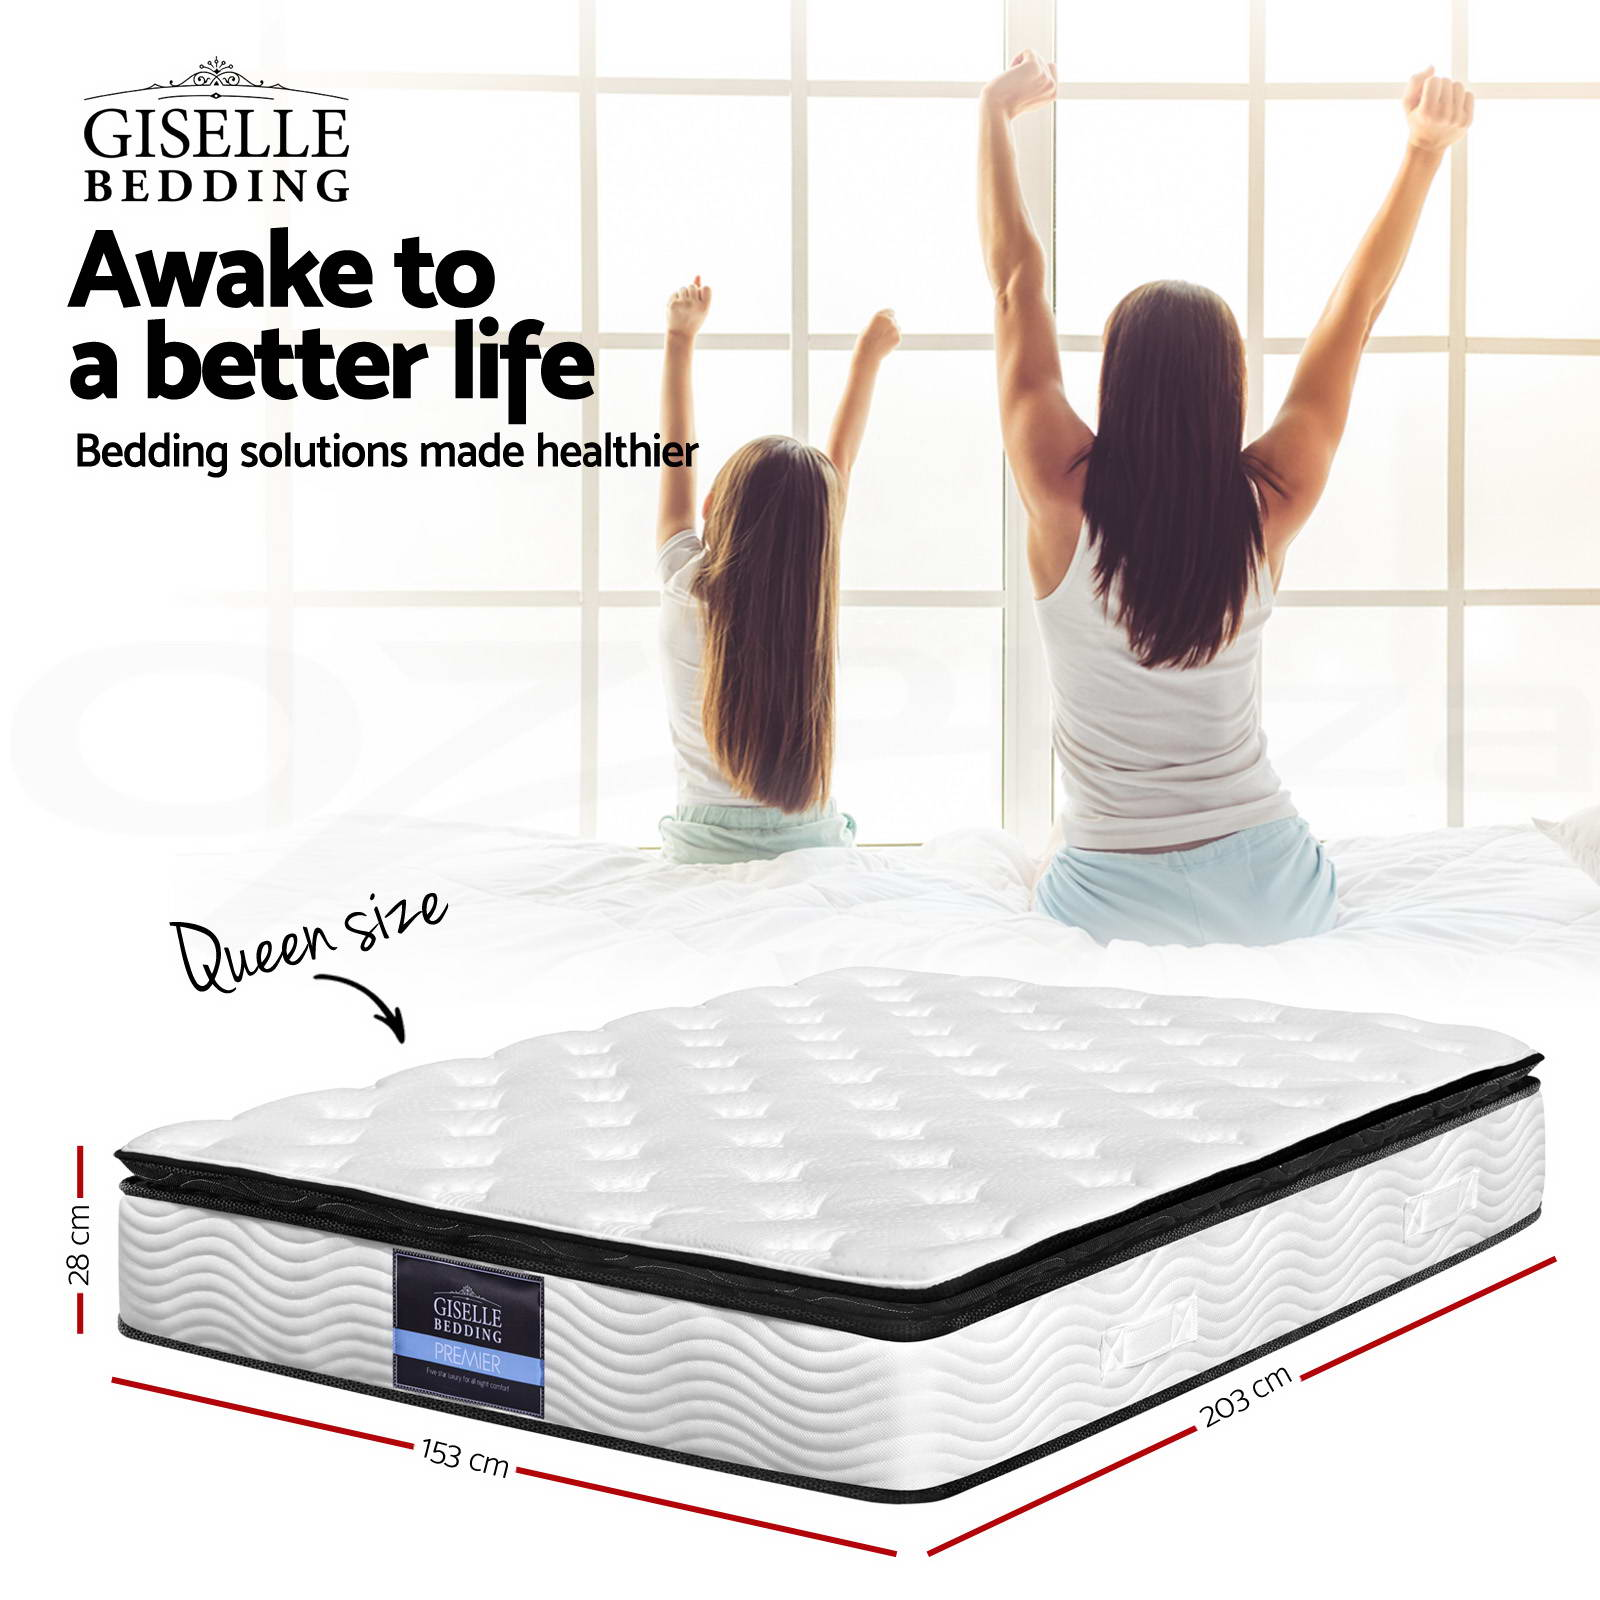 Size Of A King Single Bed Giselle Bedding Mattress Queen Double King Single Size